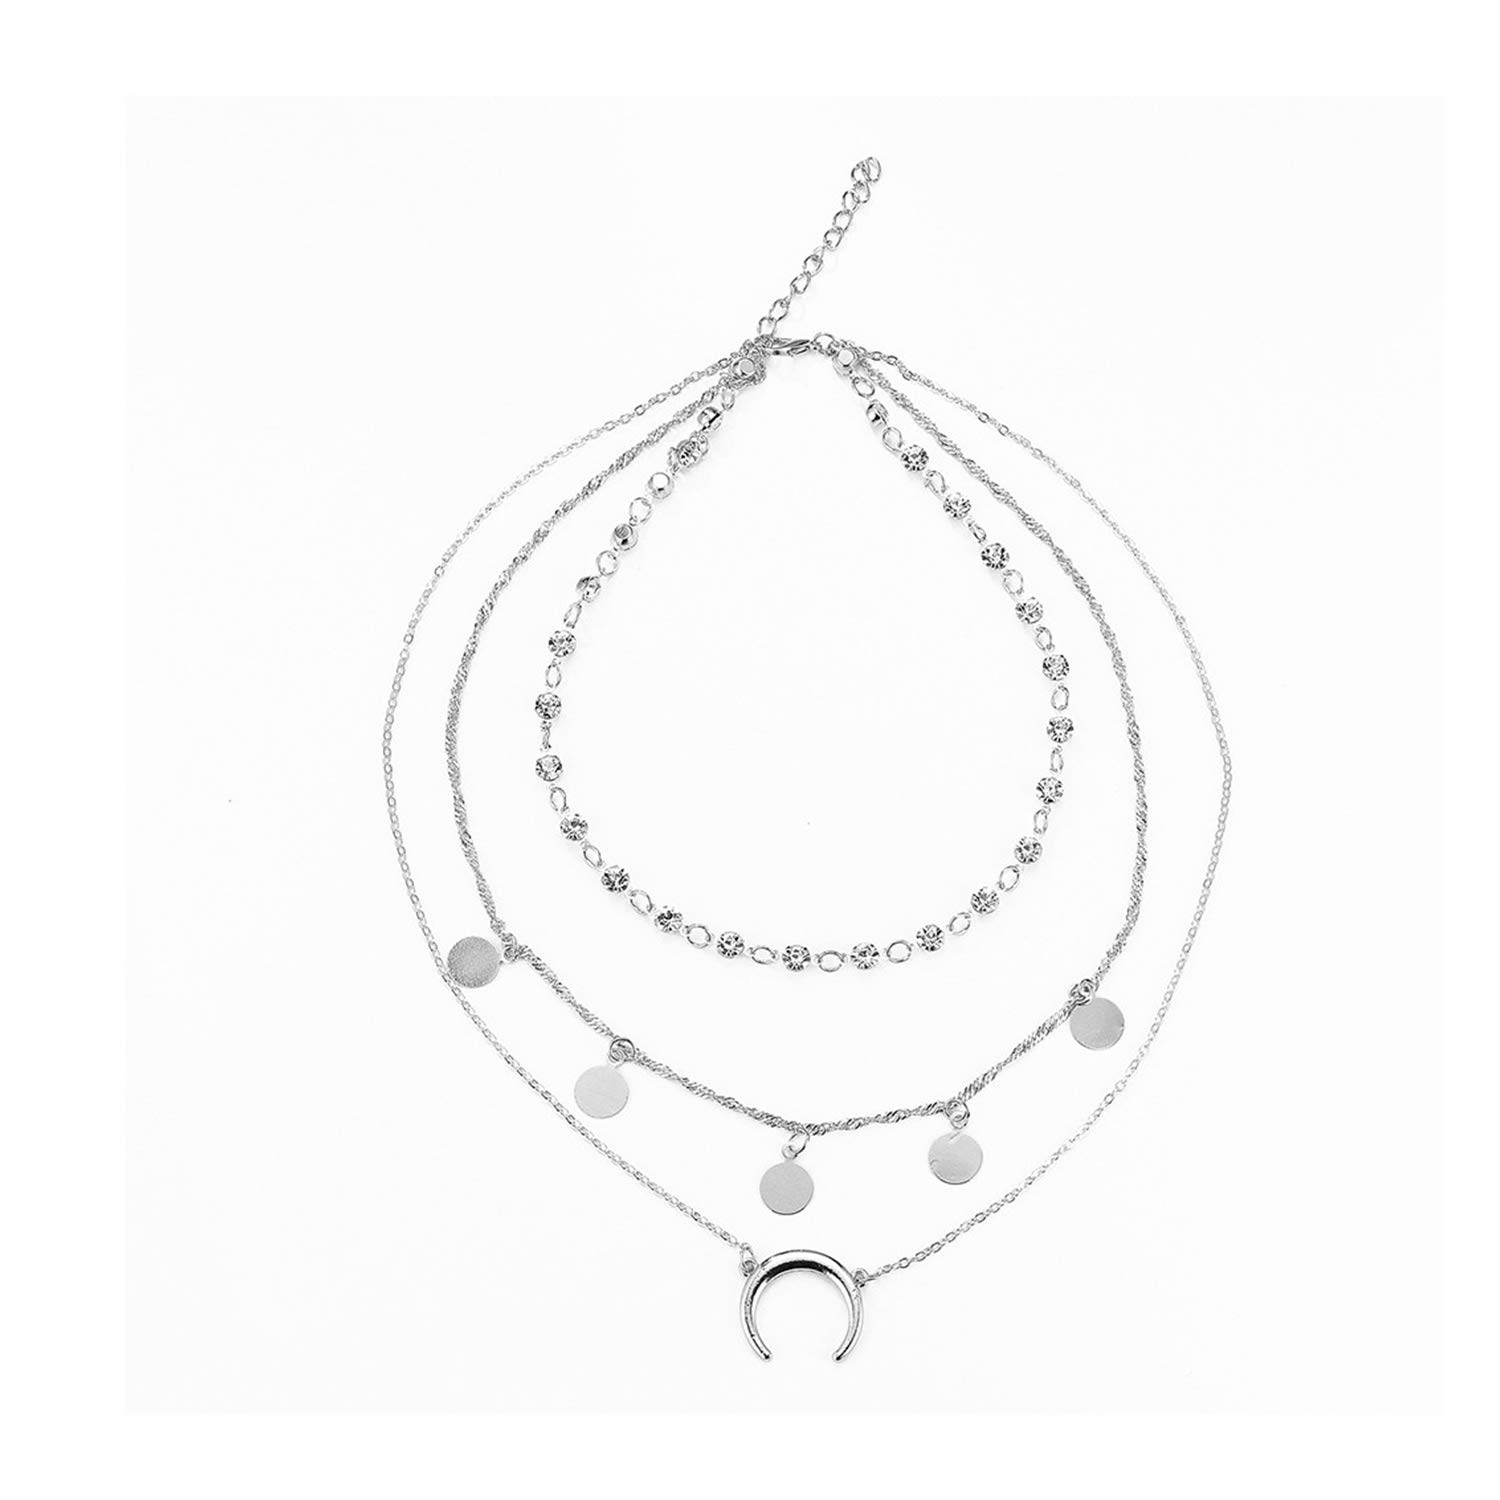 HUAMING Multilayer Chain Pendant Necklace for Women Layered Necklaces Beads Moon Necklace Jewelry Exquisite